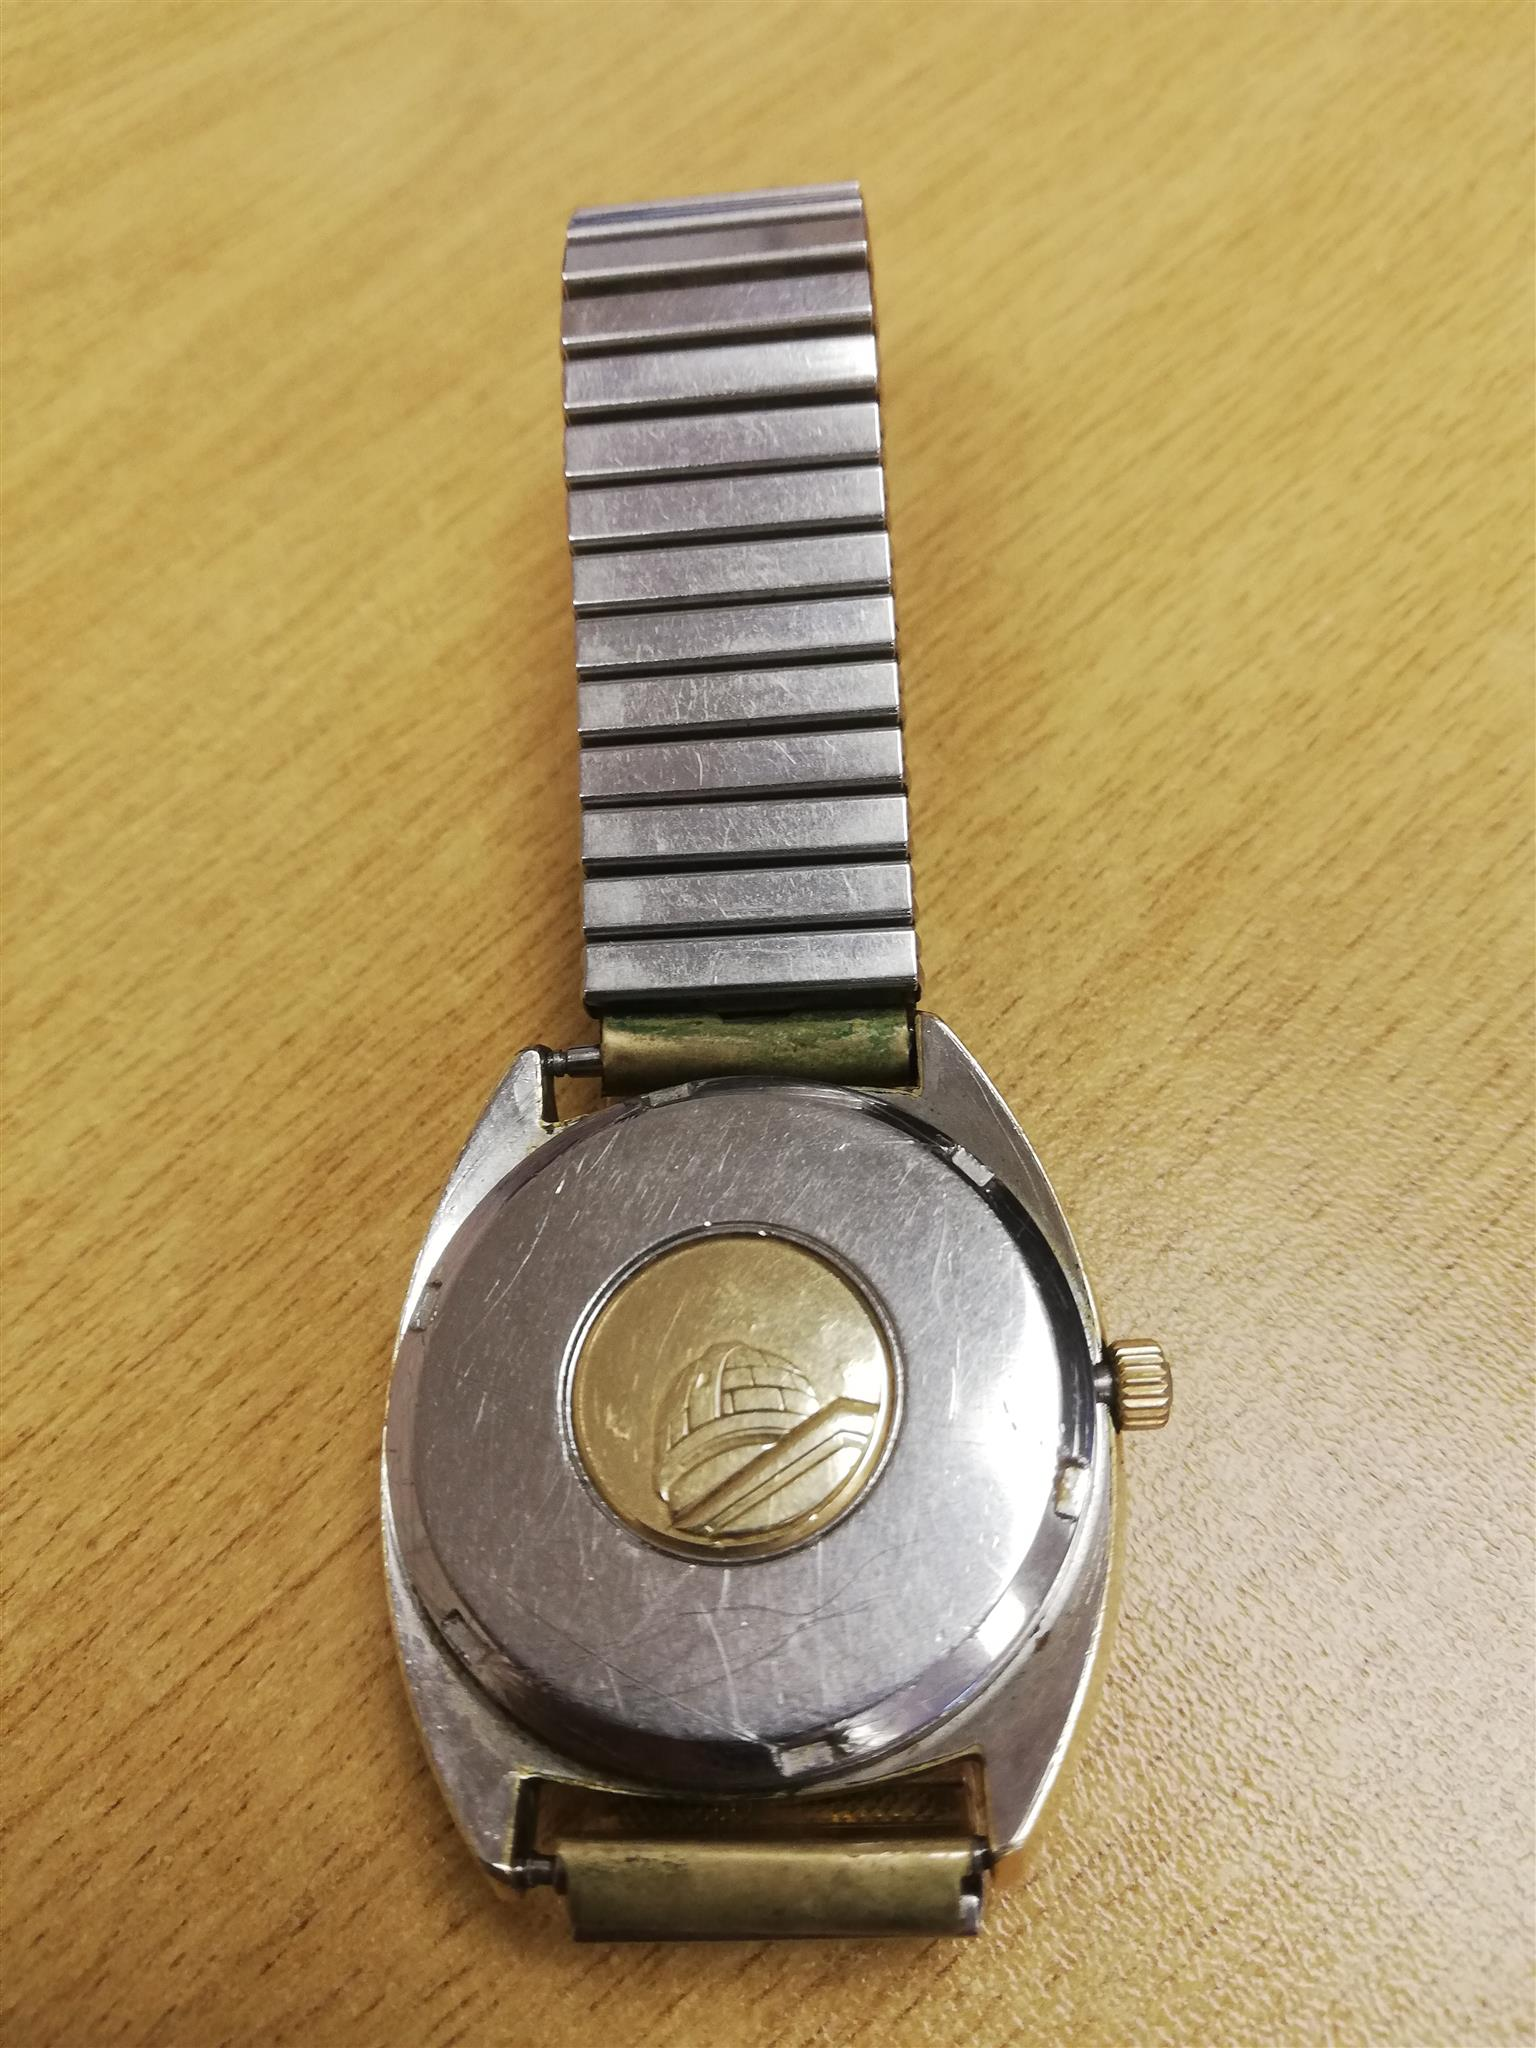 Omega Constellation men's watch (Vintage Collectors item) Still working.